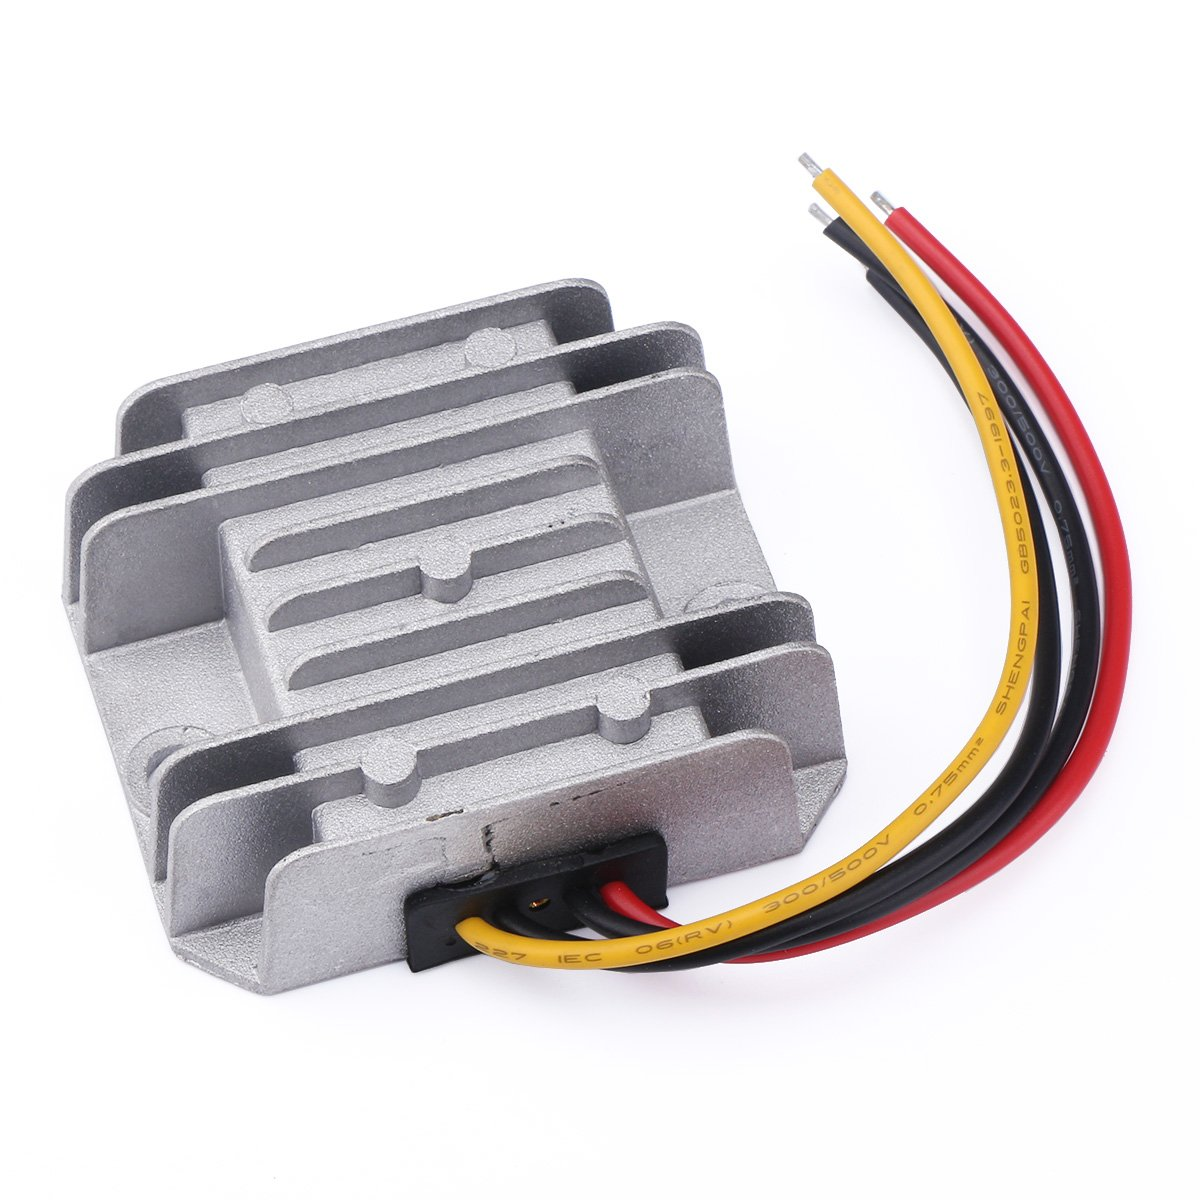 Drok Dc Buck Converter 12v 24v To 5v 5a 25w Step Down Voltage Regulator The Power Supply Is Essentially Same Transformer Volt Inverter Module Industrial Scientific